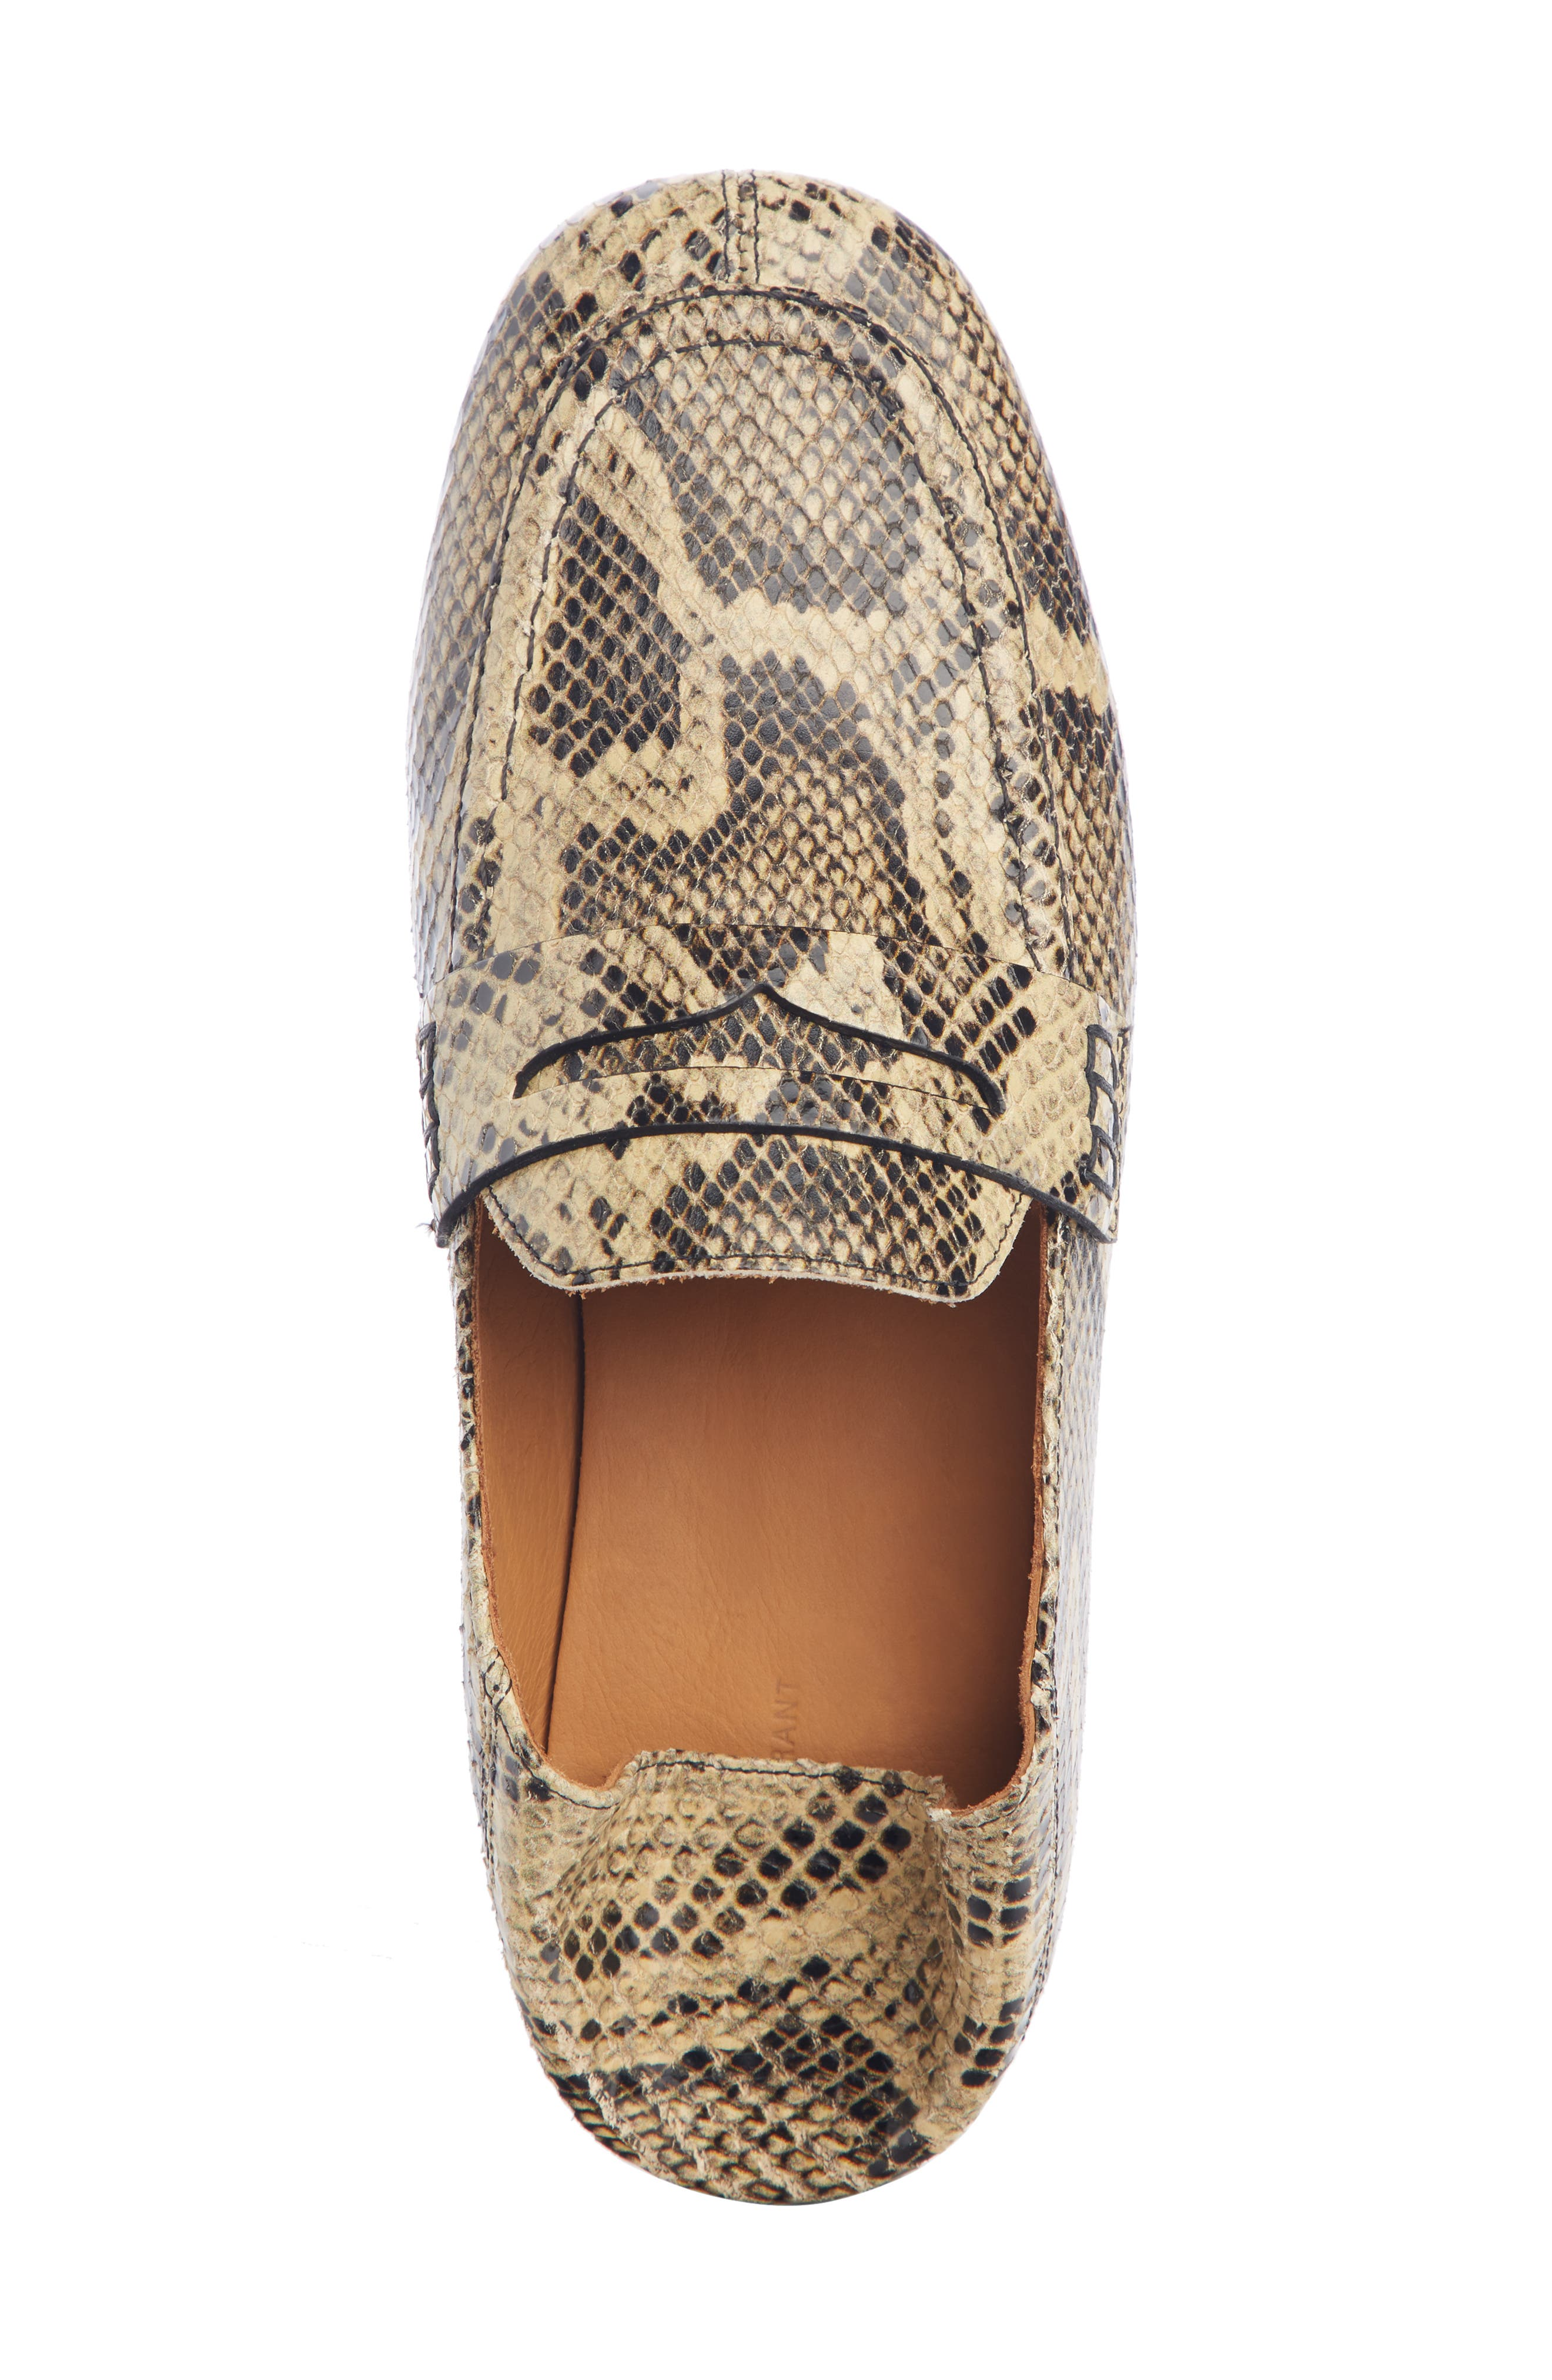 Fezzy Snakeskin Embossed Convertible Loafer,                             Alternate thumbnail 5, color,                             NATURAL EXOTIC